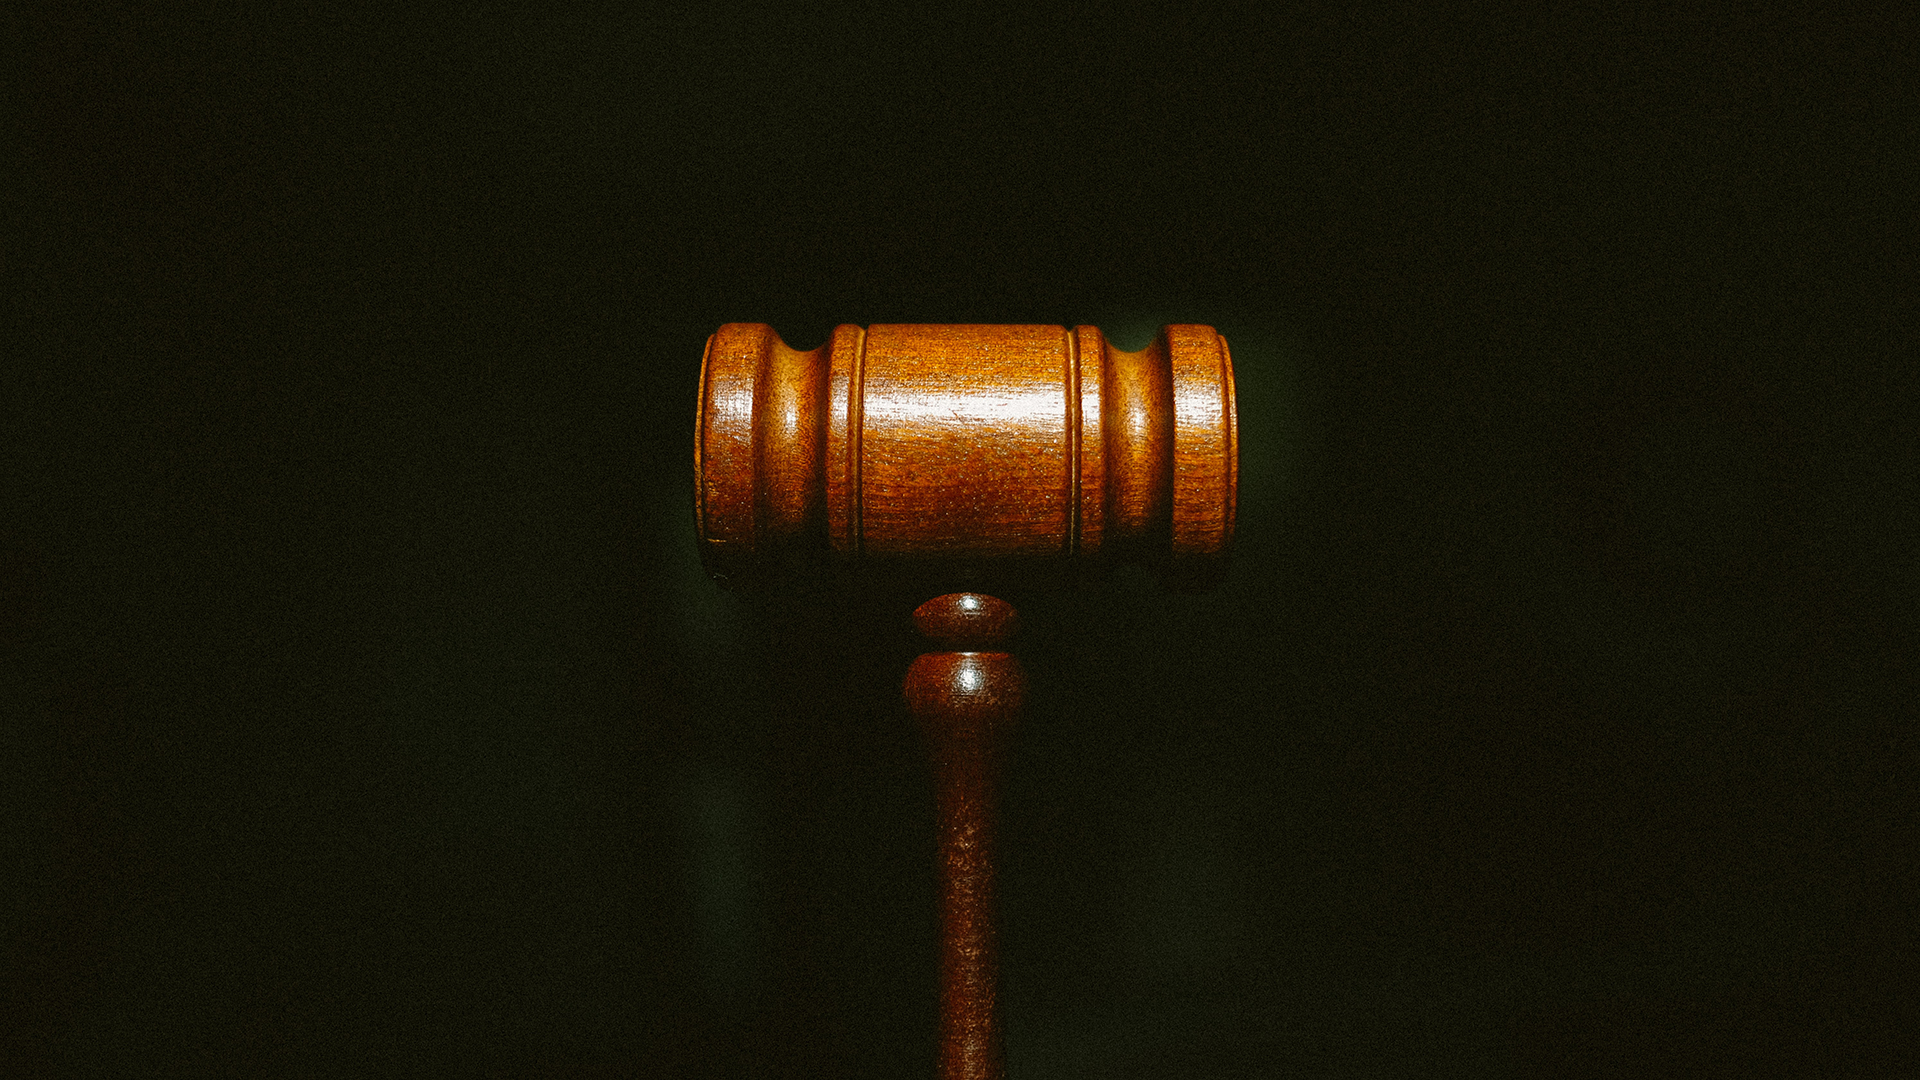 Gavel on a dark background